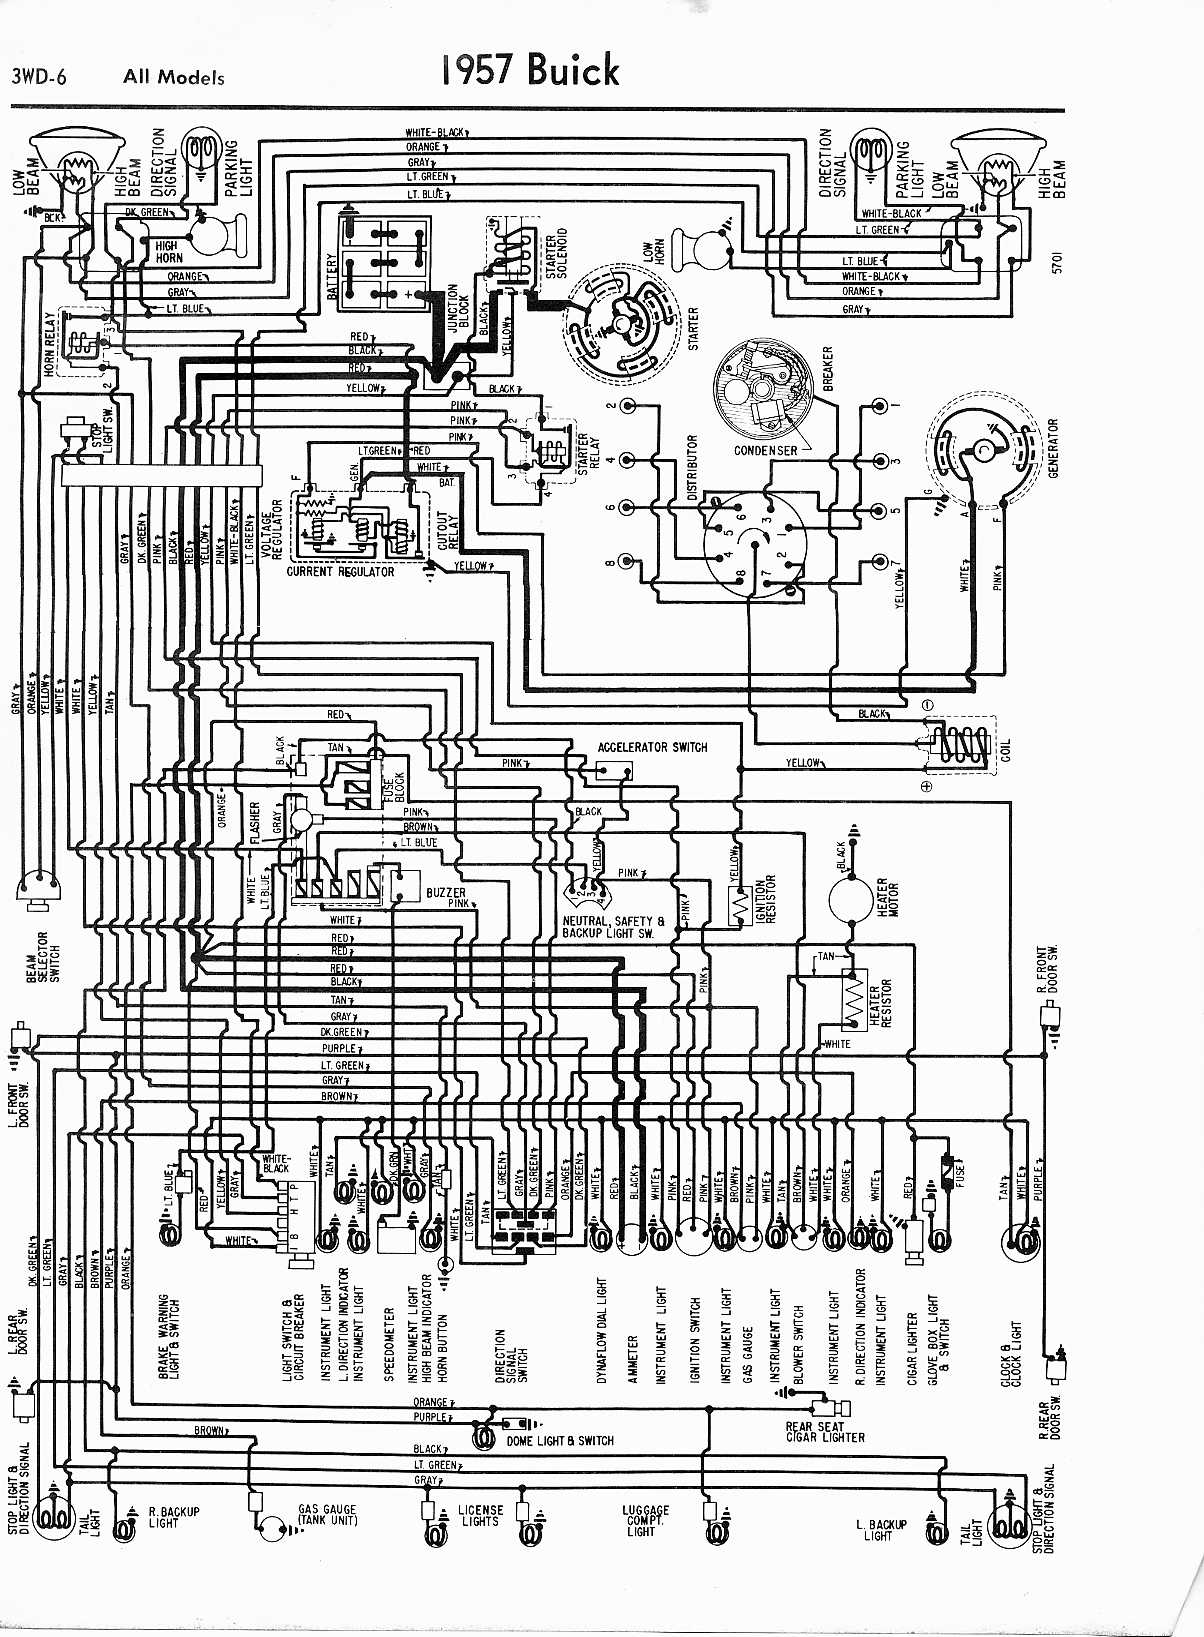 Buick Wiring Diagrams 1957 1965 1976 Chevelle Diagram All Models